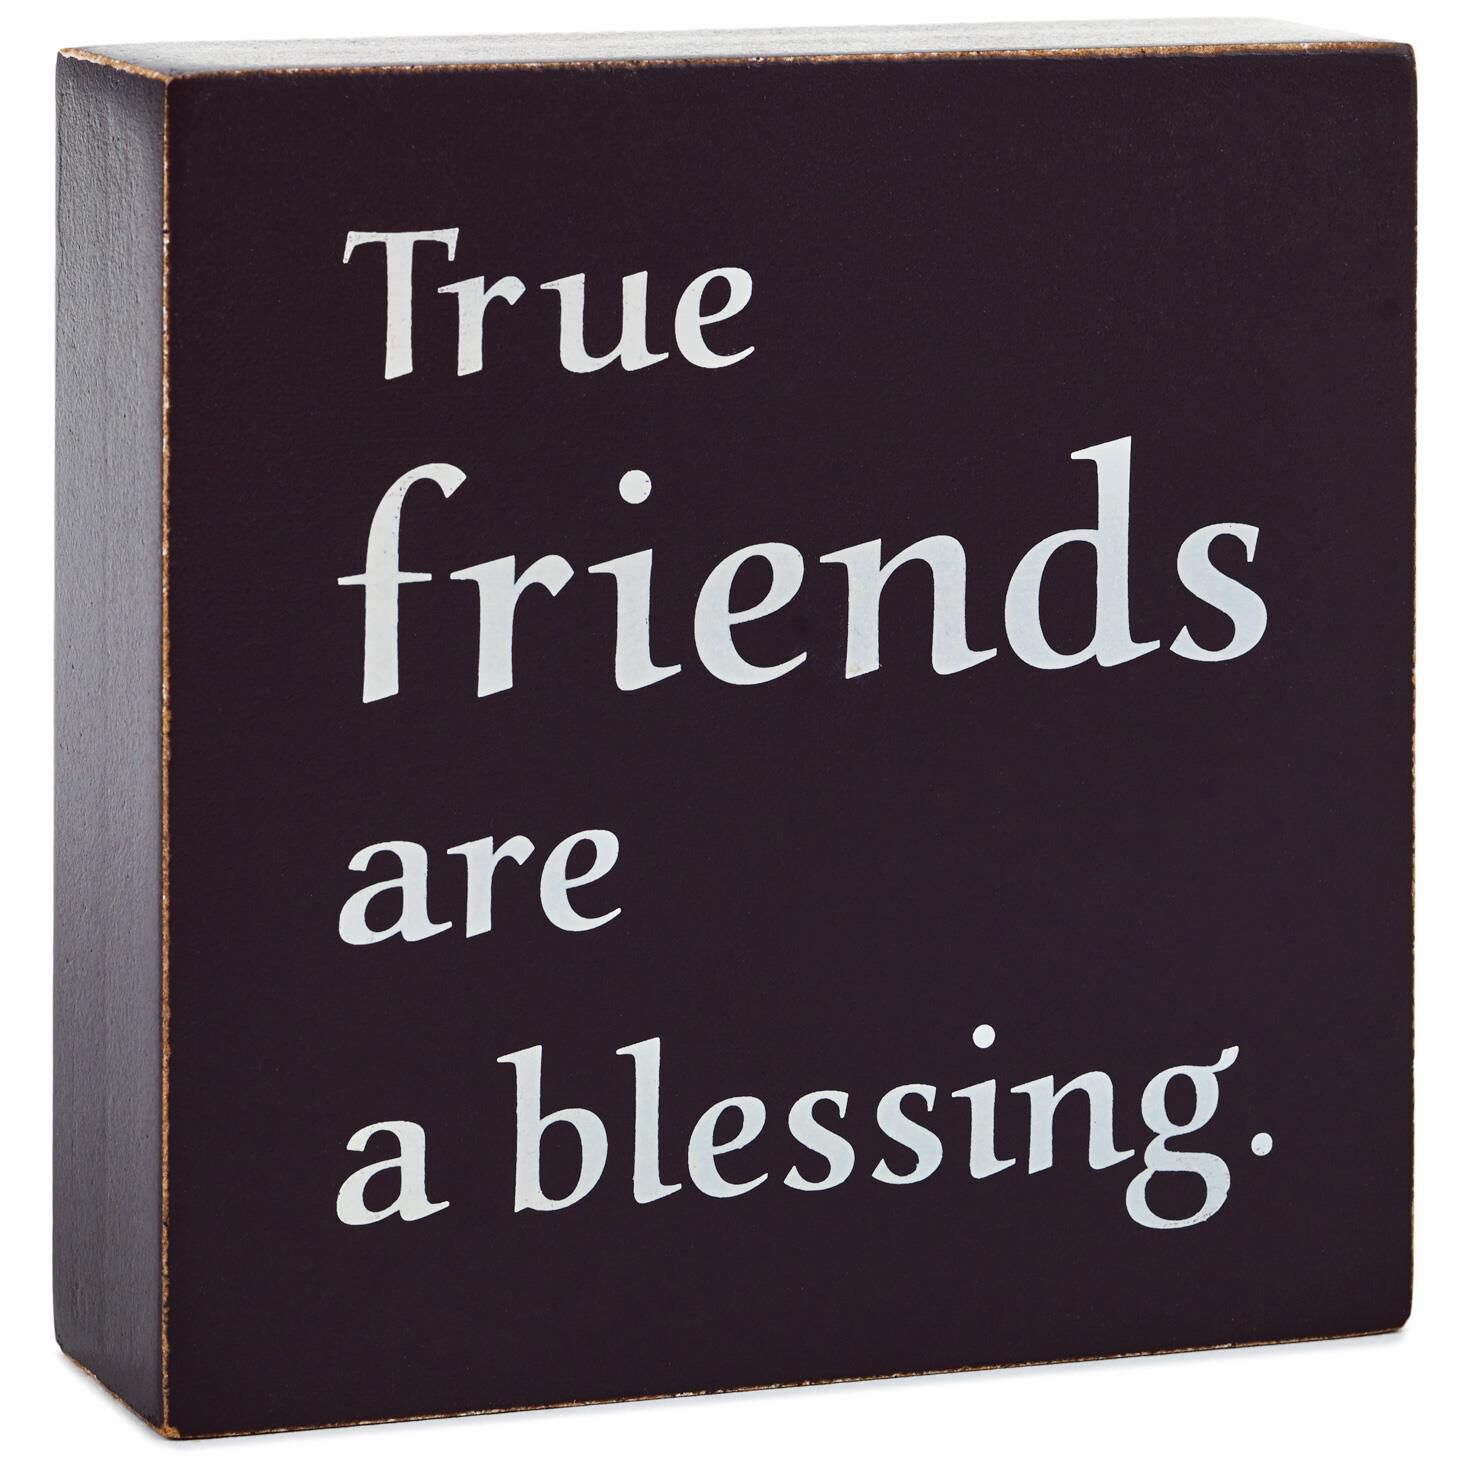 True Friends Are a Blessing Wood Quote Sign, 3.75x3.75